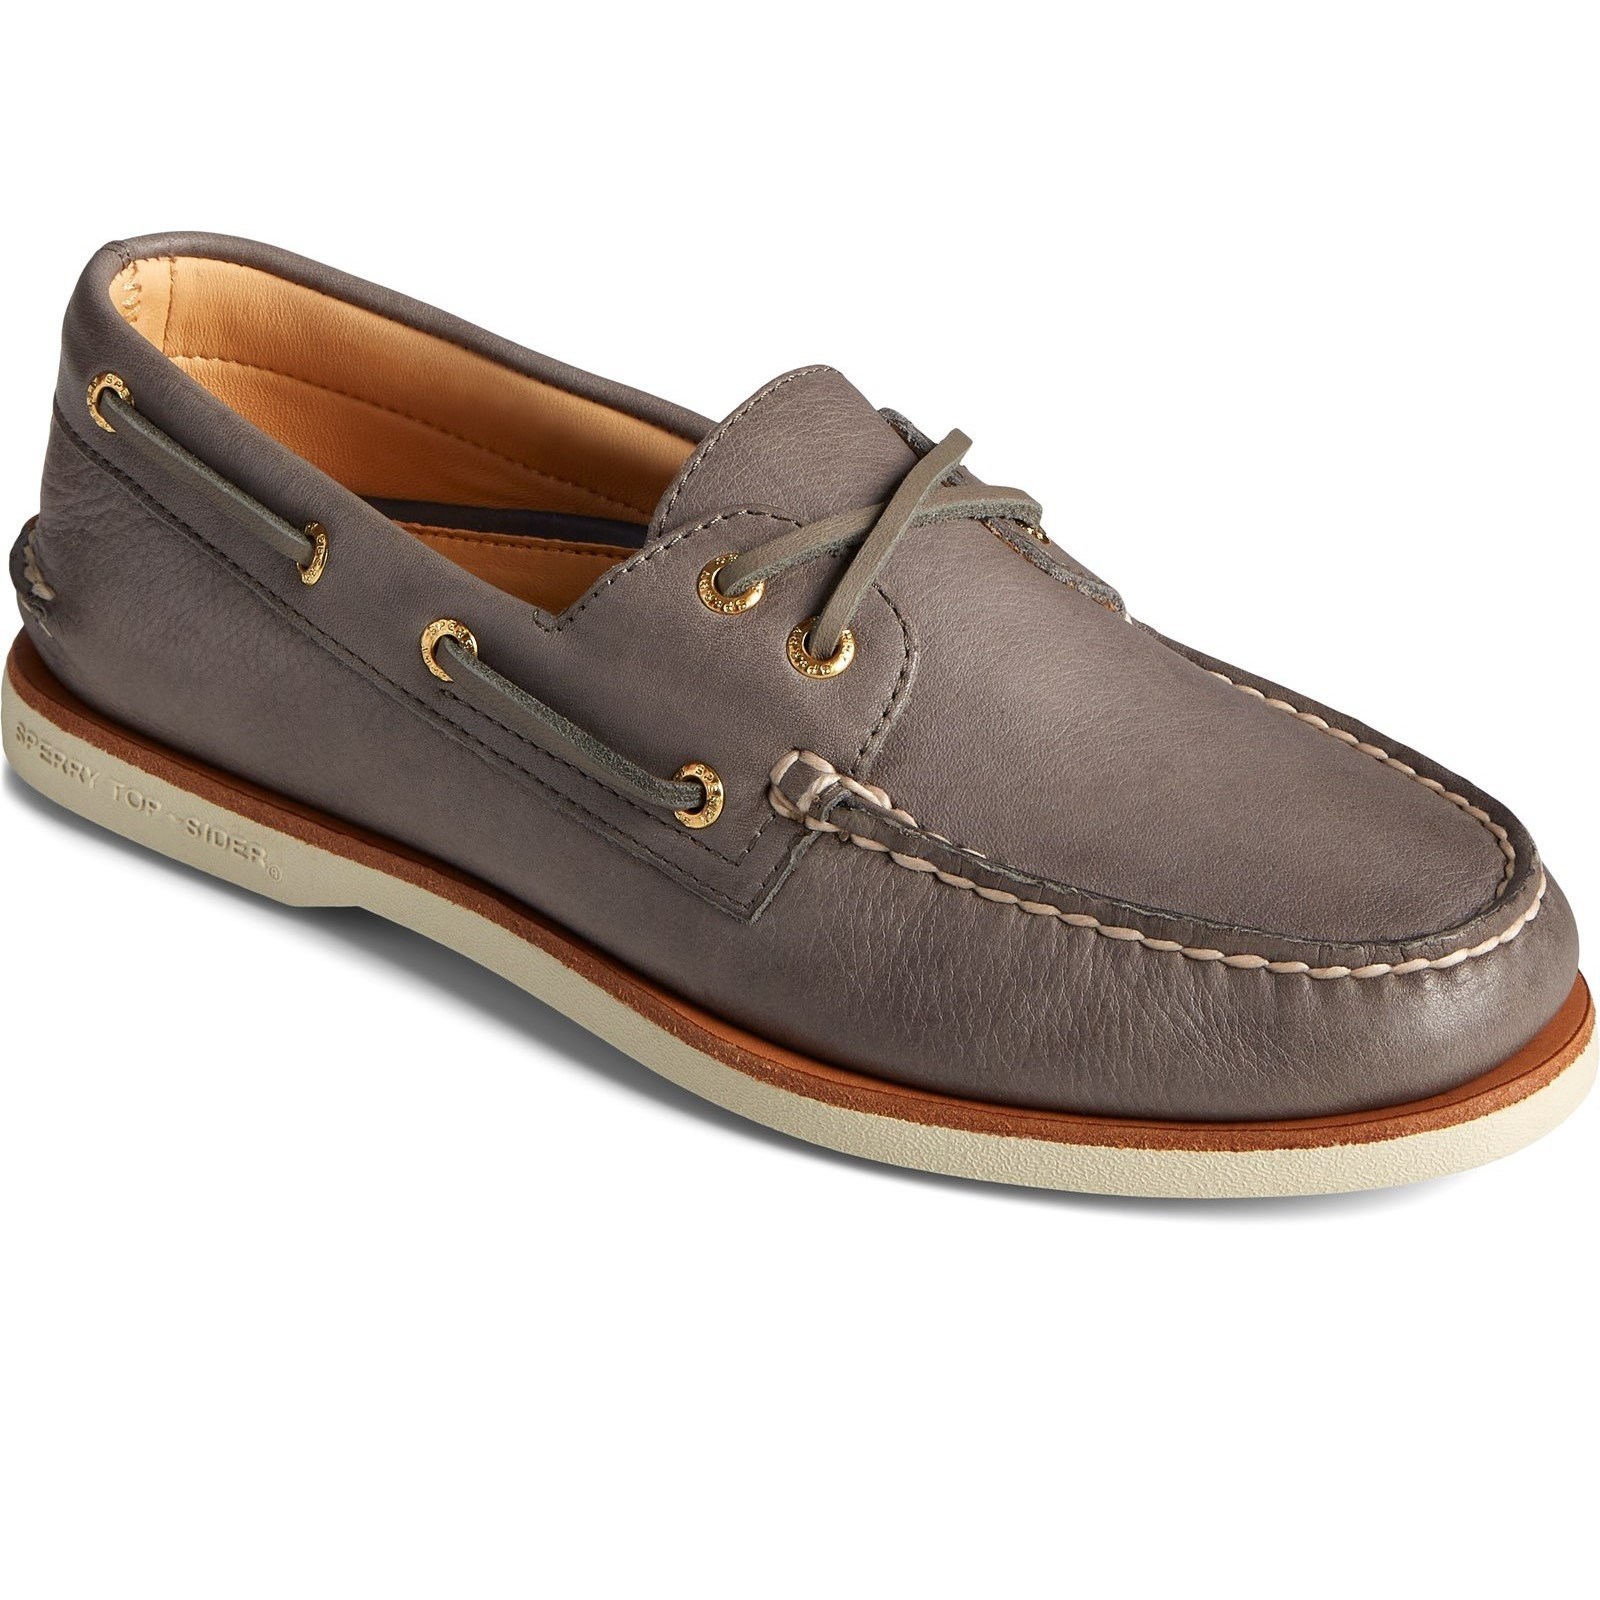 Sperry Men's A/O 2-Eye Boat Shoe Various Colours 32926 - Charcoal 10.5